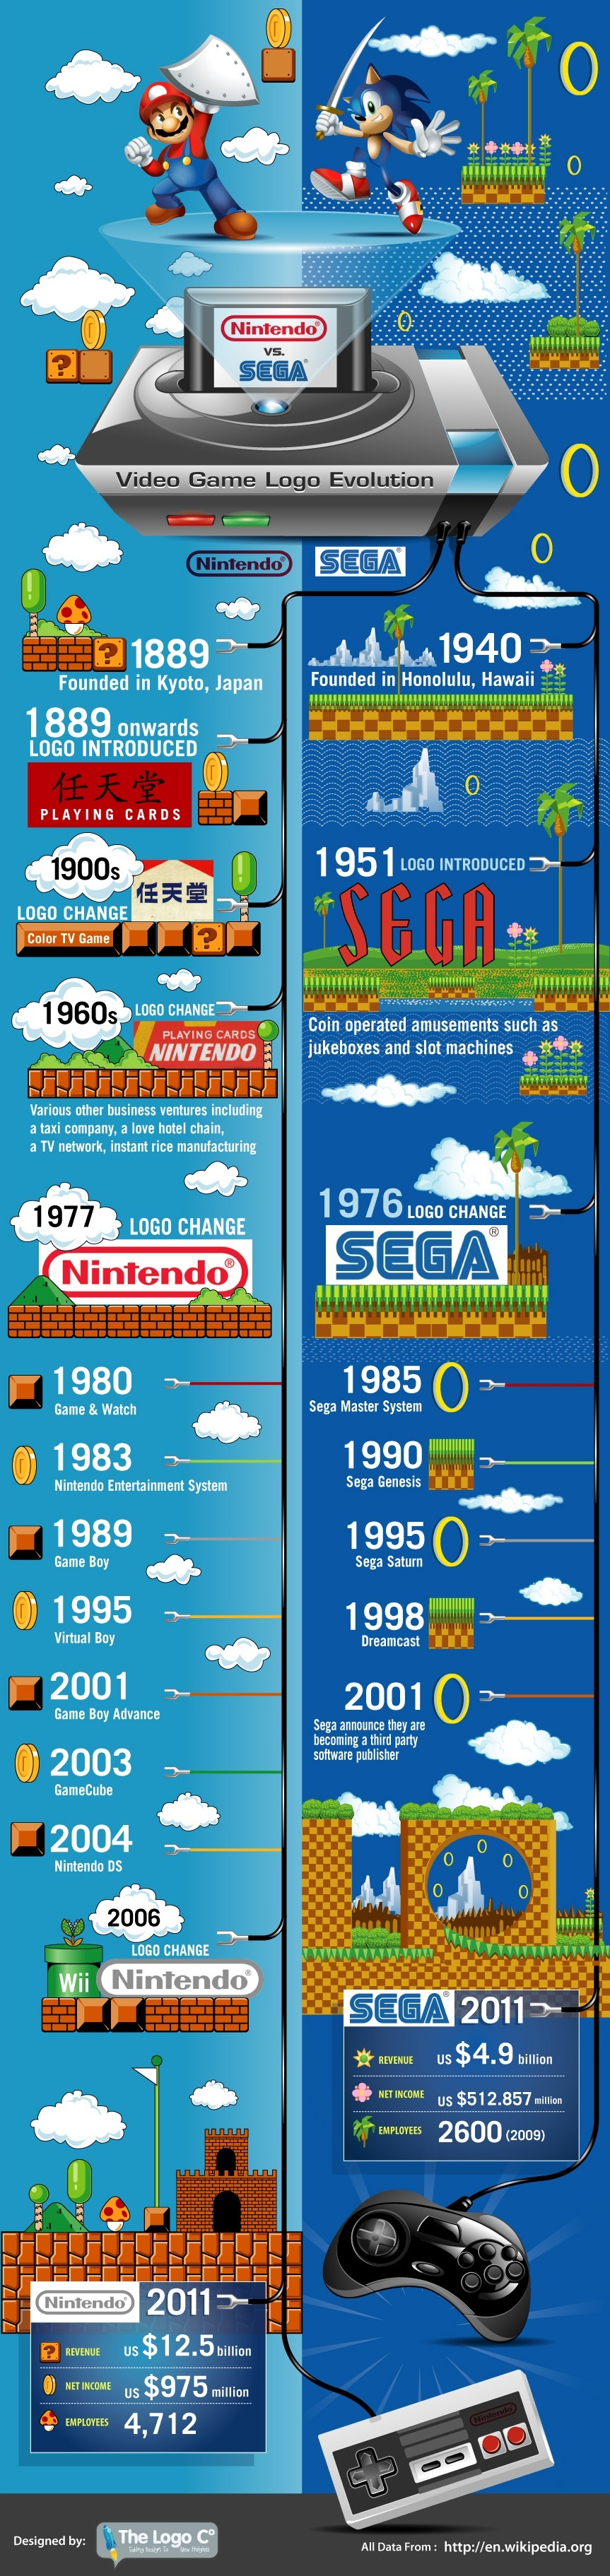 Sony-Mario-Game-Evolution